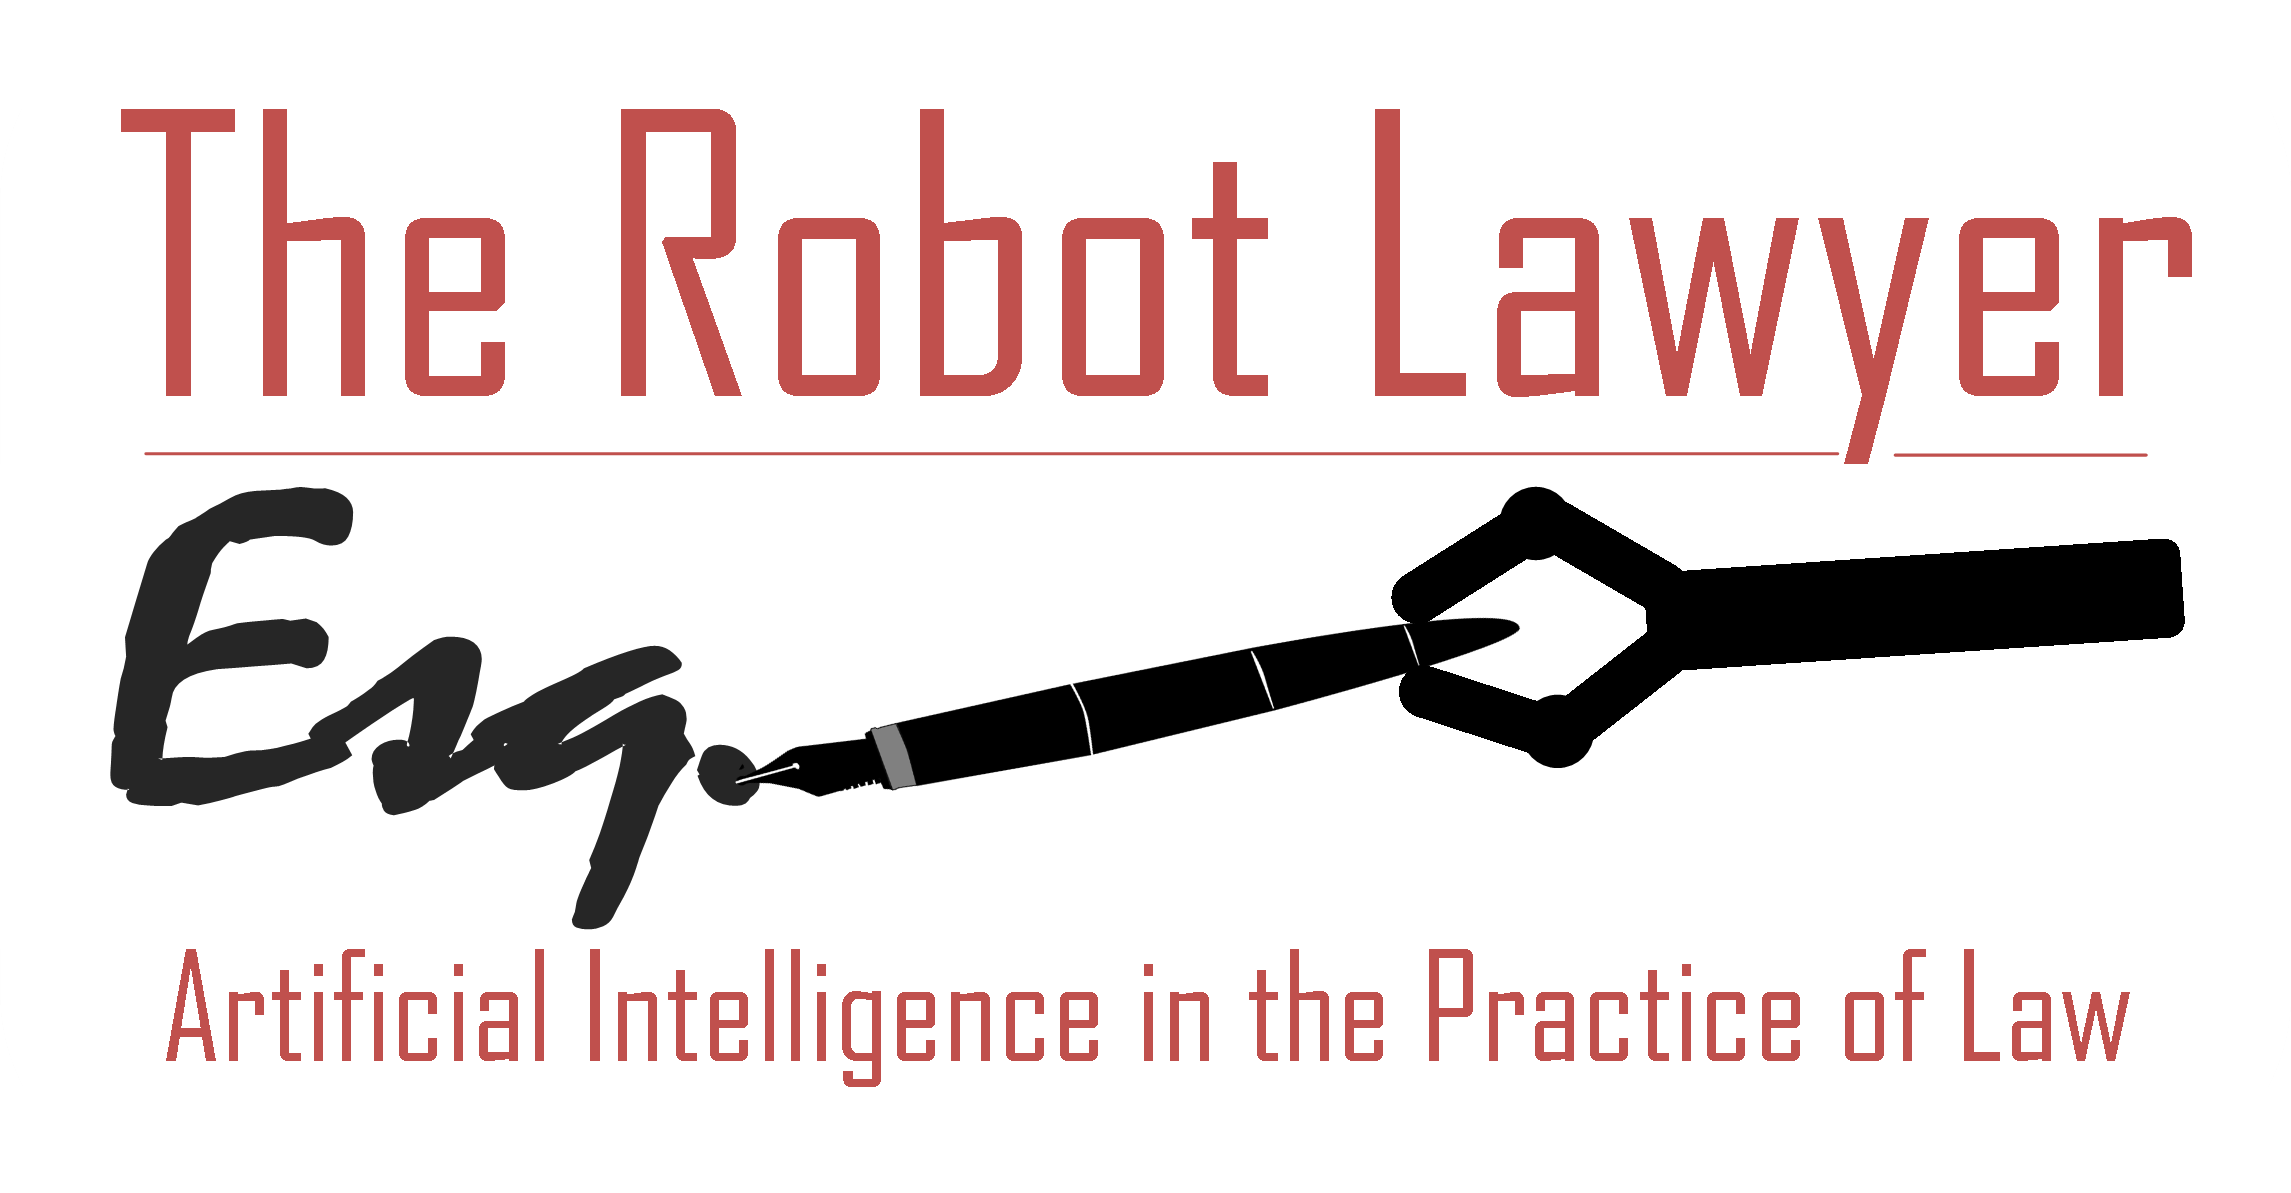 Legal Tech Institute program - The Robot Lawyer: Artificial Intelligence in the Practice of Law. Click to access a recording of the program.